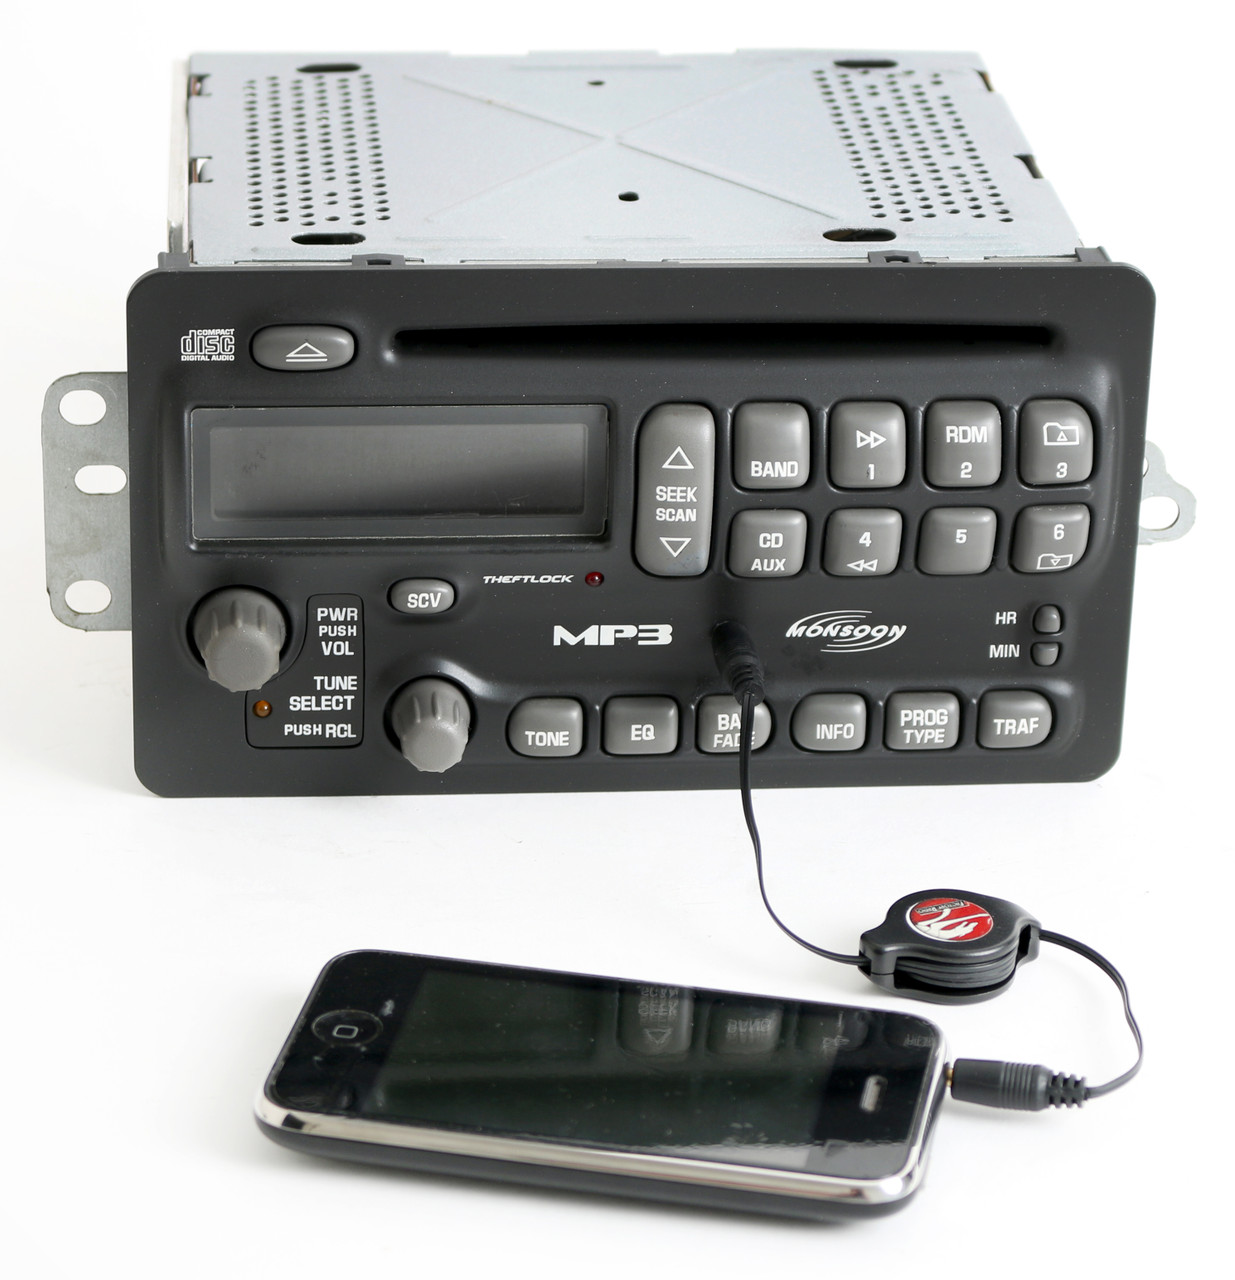 1 Factory Radio AM FM CD Player w Aux Input Compatible With 2000-01 Pontiac Sunfire Grand AM 10311742